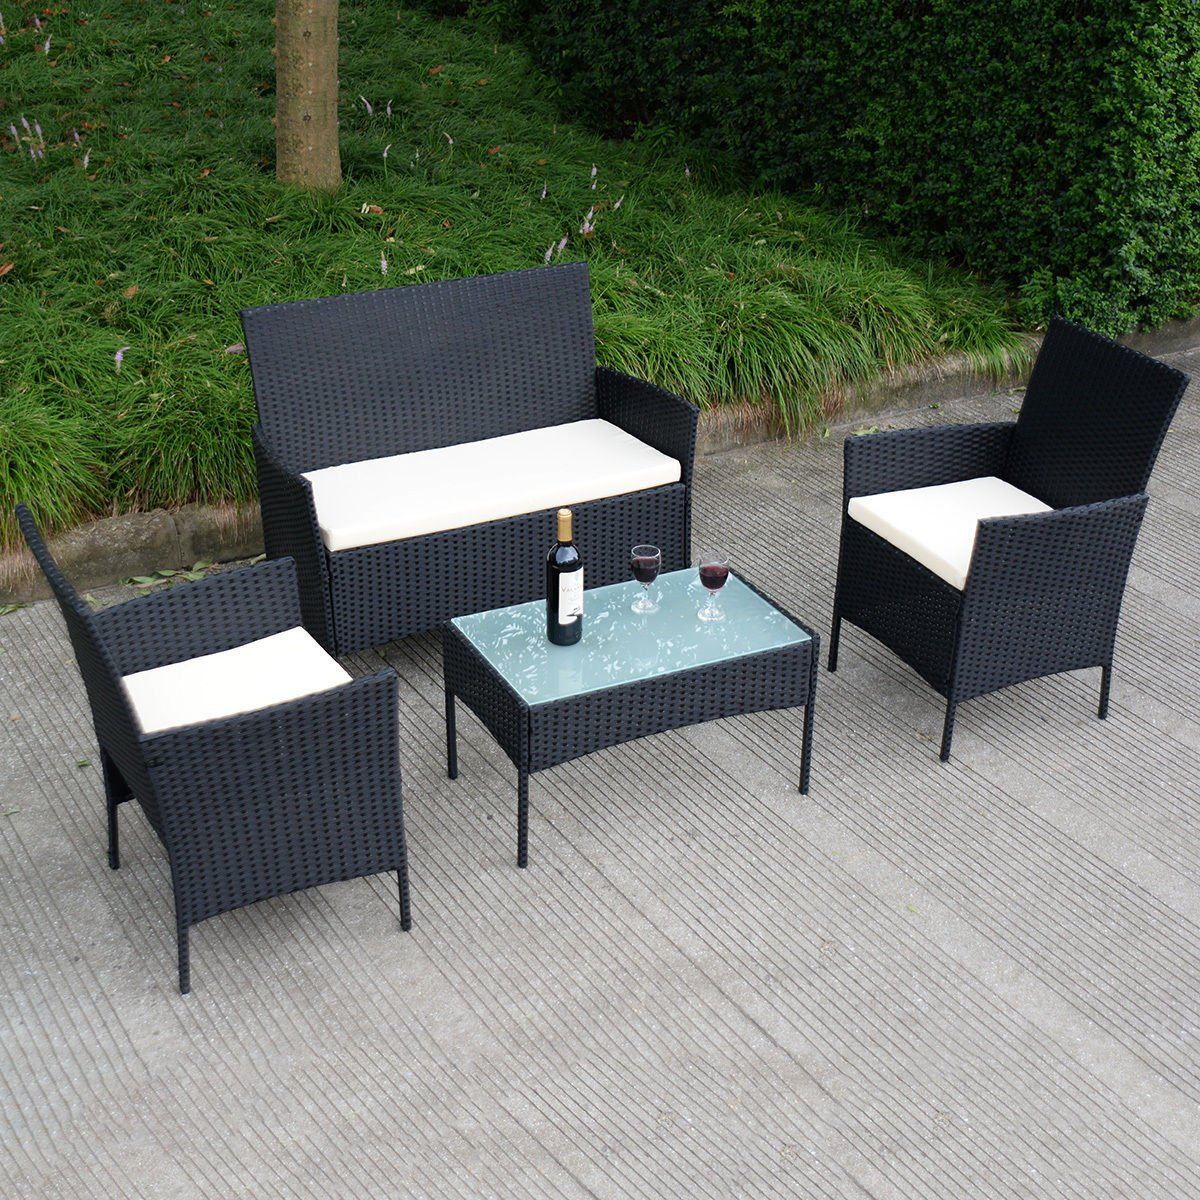 Amazon com  Tangkula 4 pcs Wicker Furniture Set Rattan Sofas Garden Lawn  Patio Furniture  Garden   Outdoor. Amazon com  Tangkula 4 pcs Wicker Furniture Set Rattan Sofas